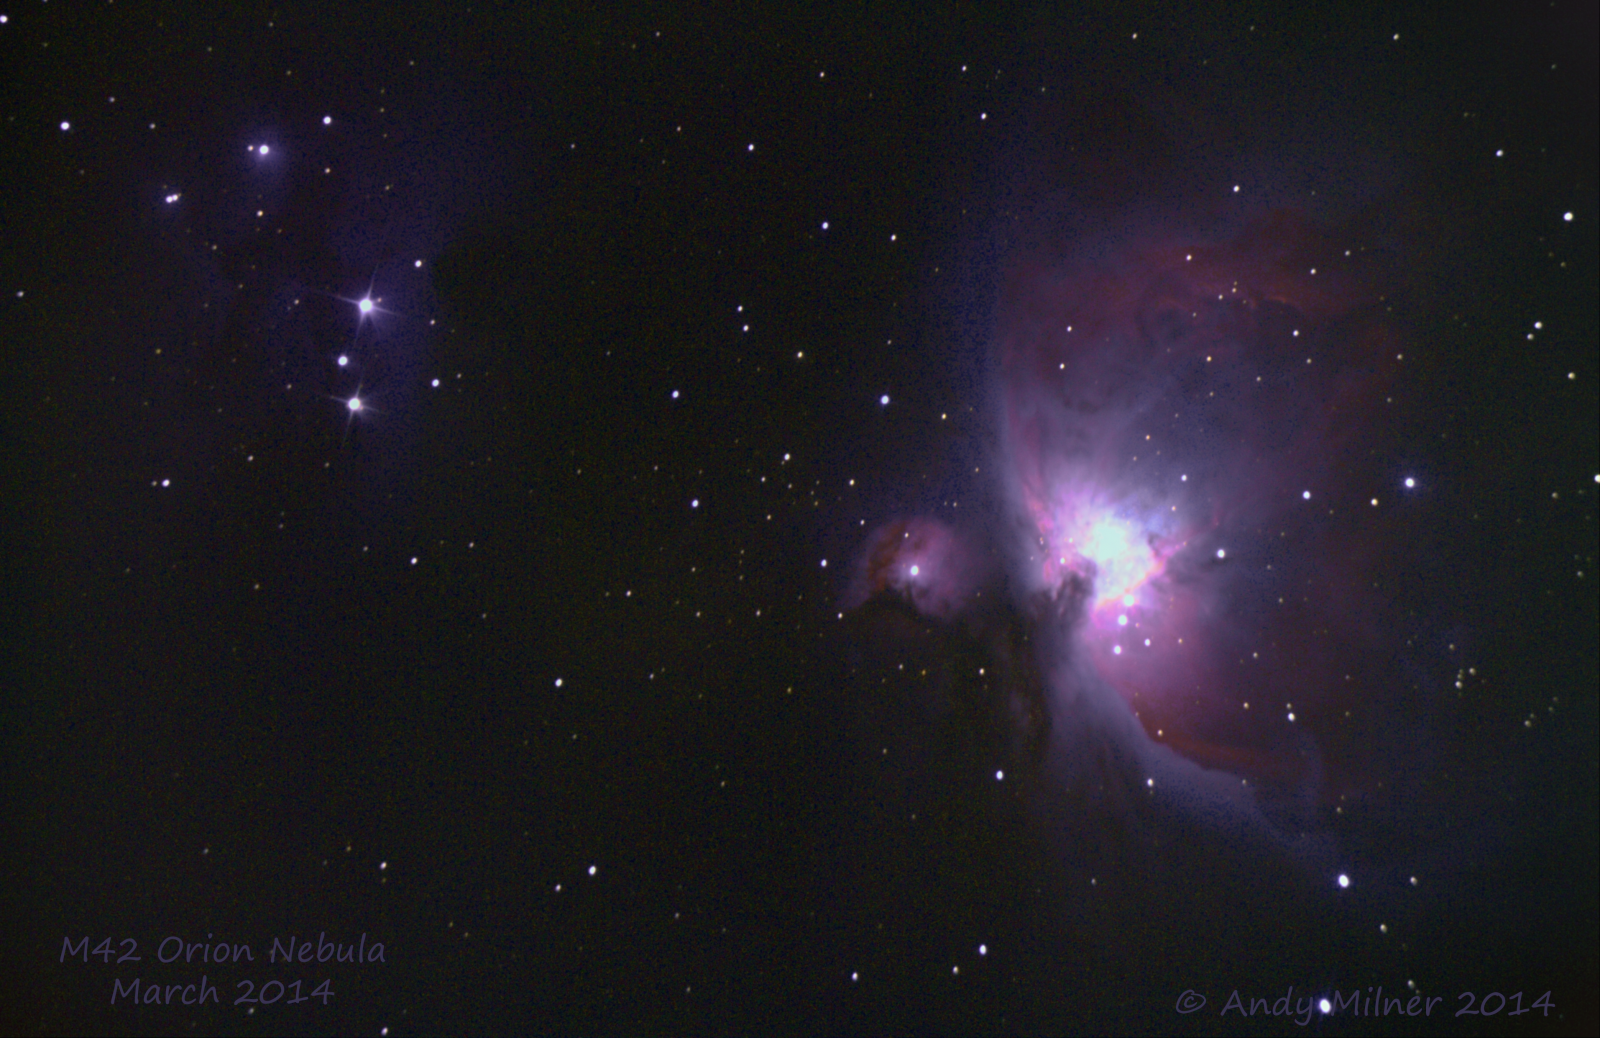 Re process of M42 Orion Nebula with Core Subs